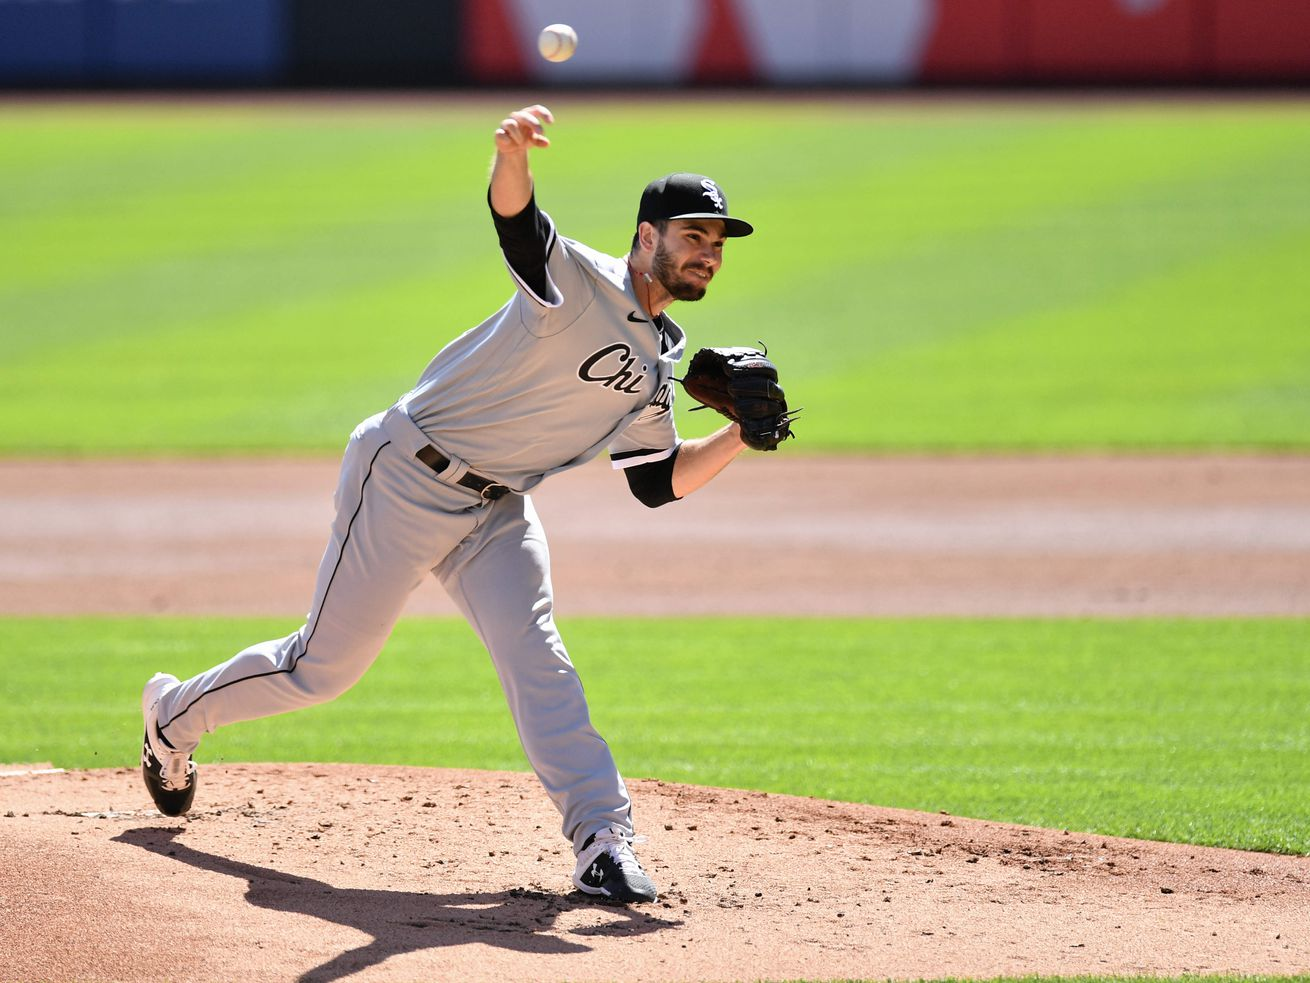 White Sox' Dylan Cease struggling at the wrong time